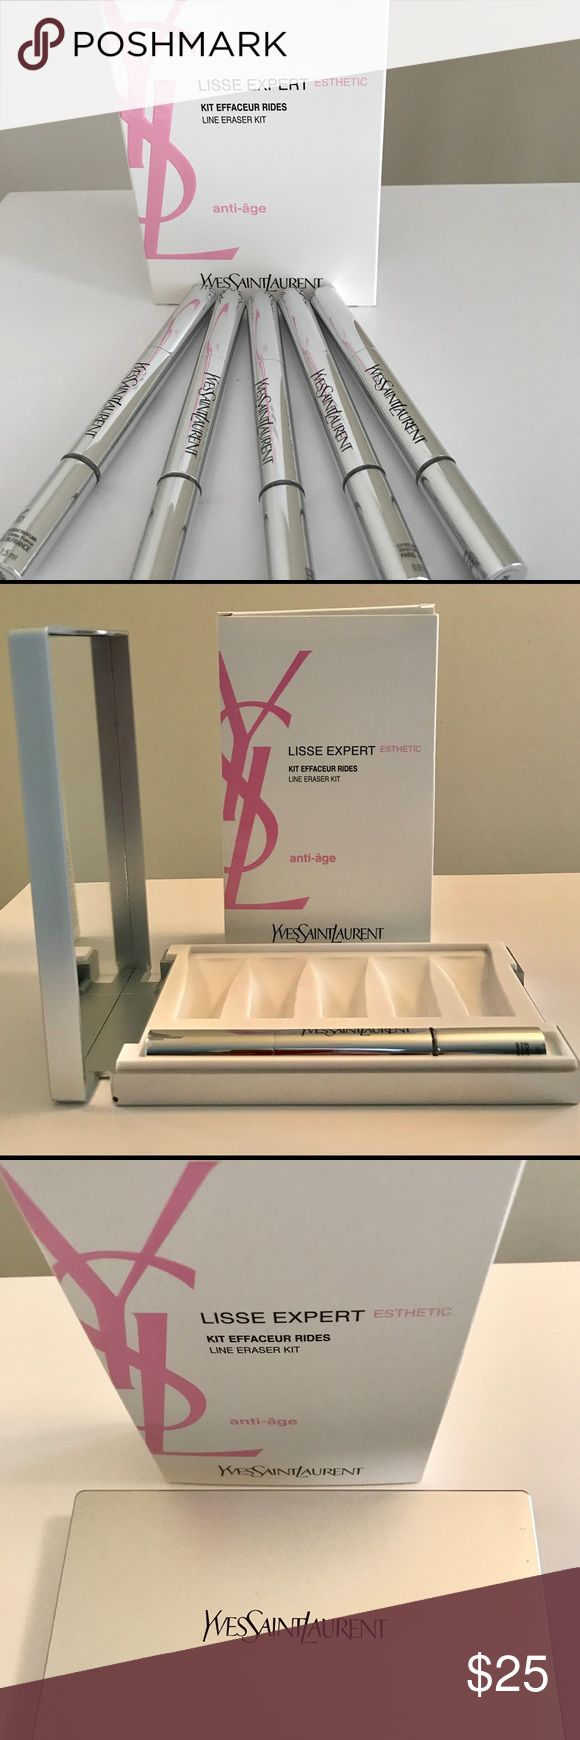 YSL mirrored Beauty case and wrinkle filler pen NWT